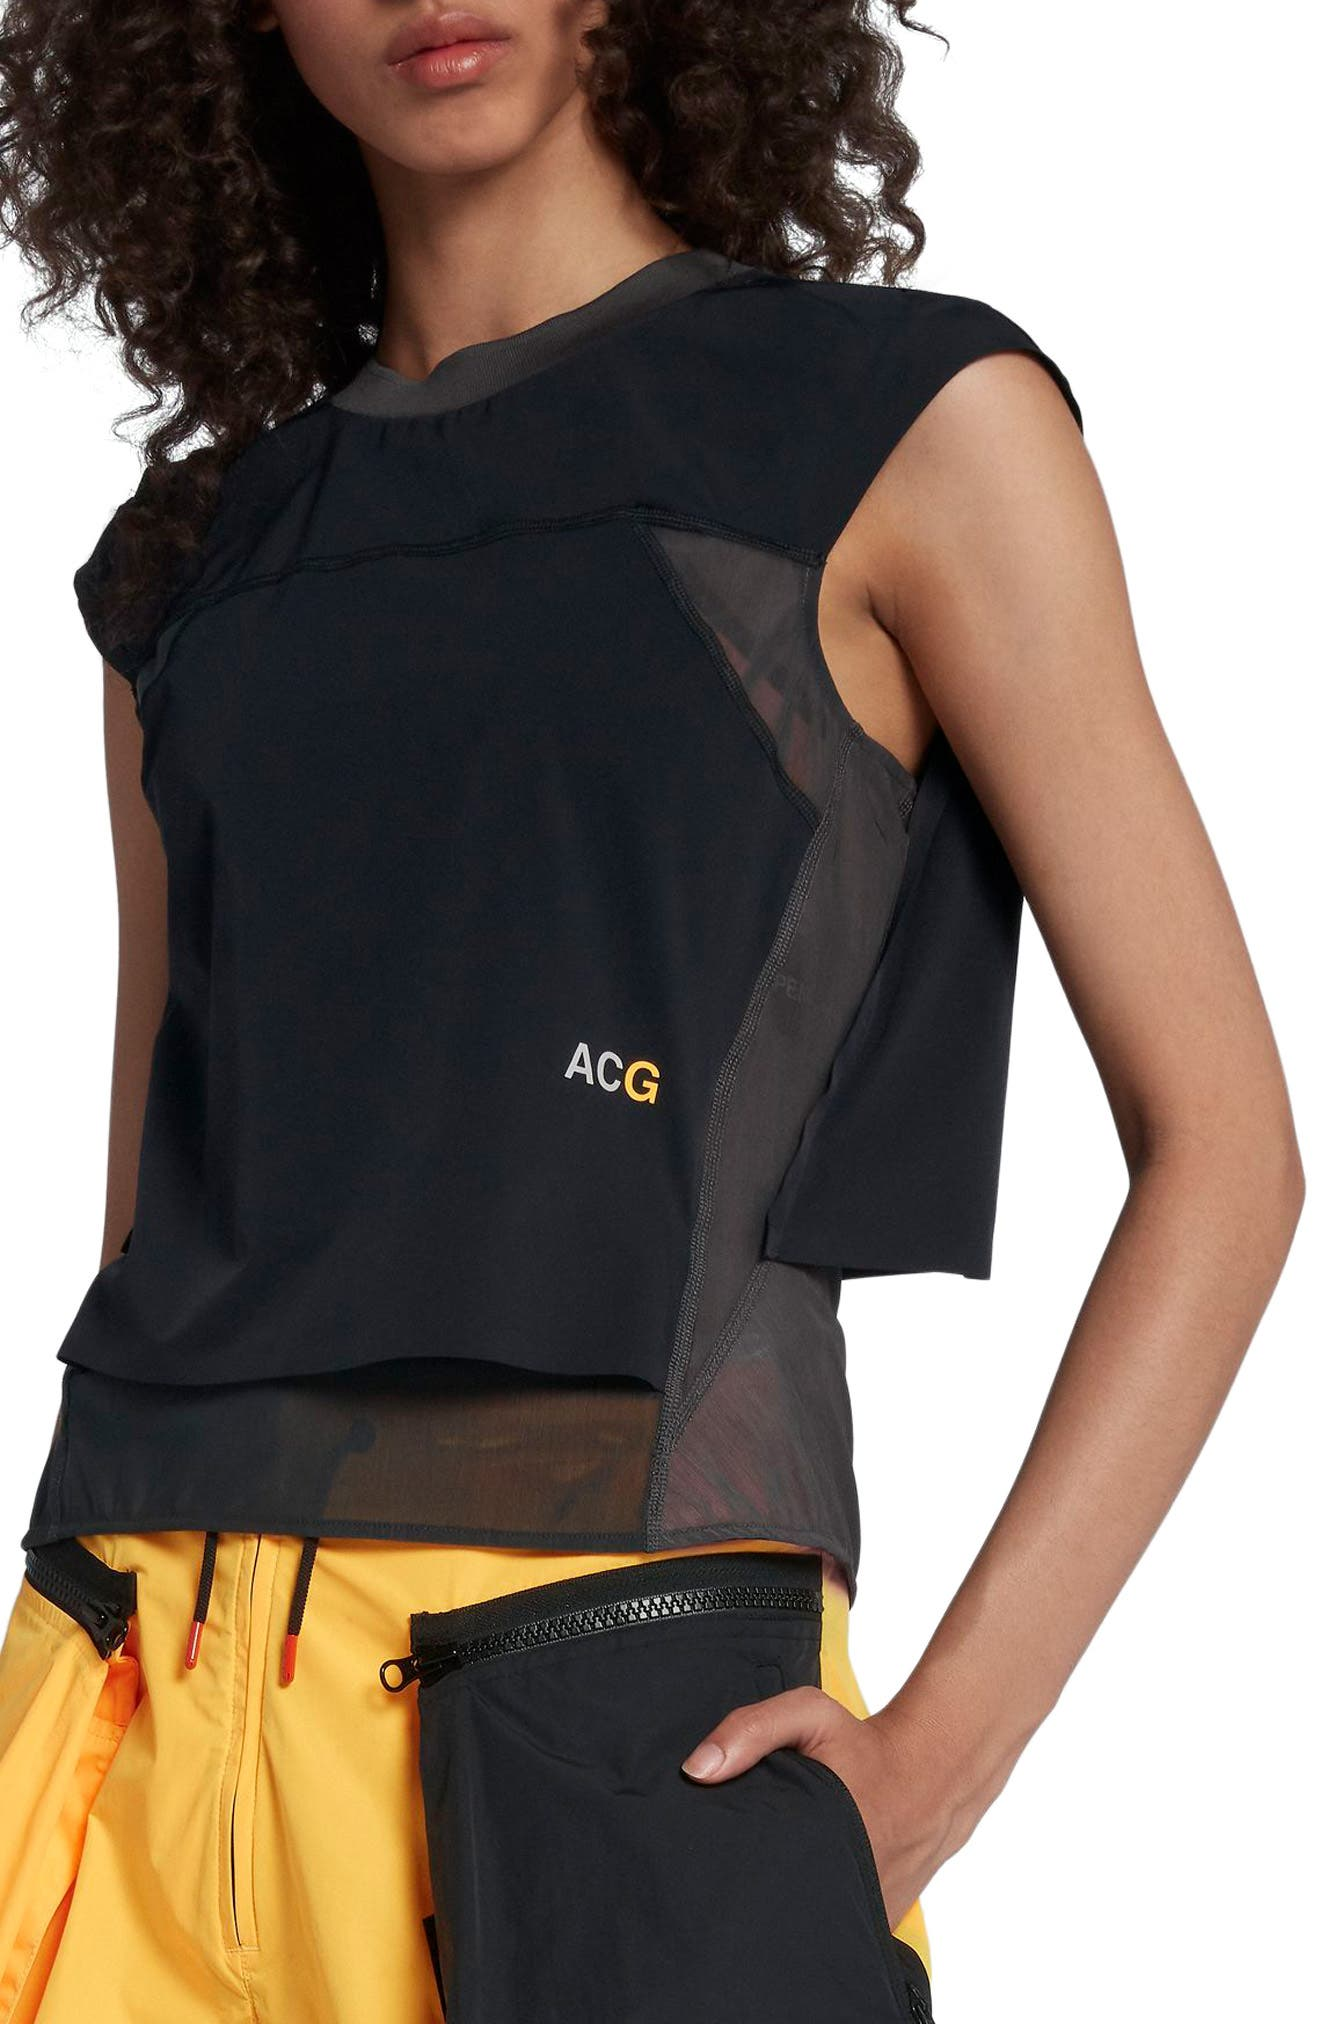 NikeLab ACG Women's Top,                             Main thumbnail 1, color,                             010